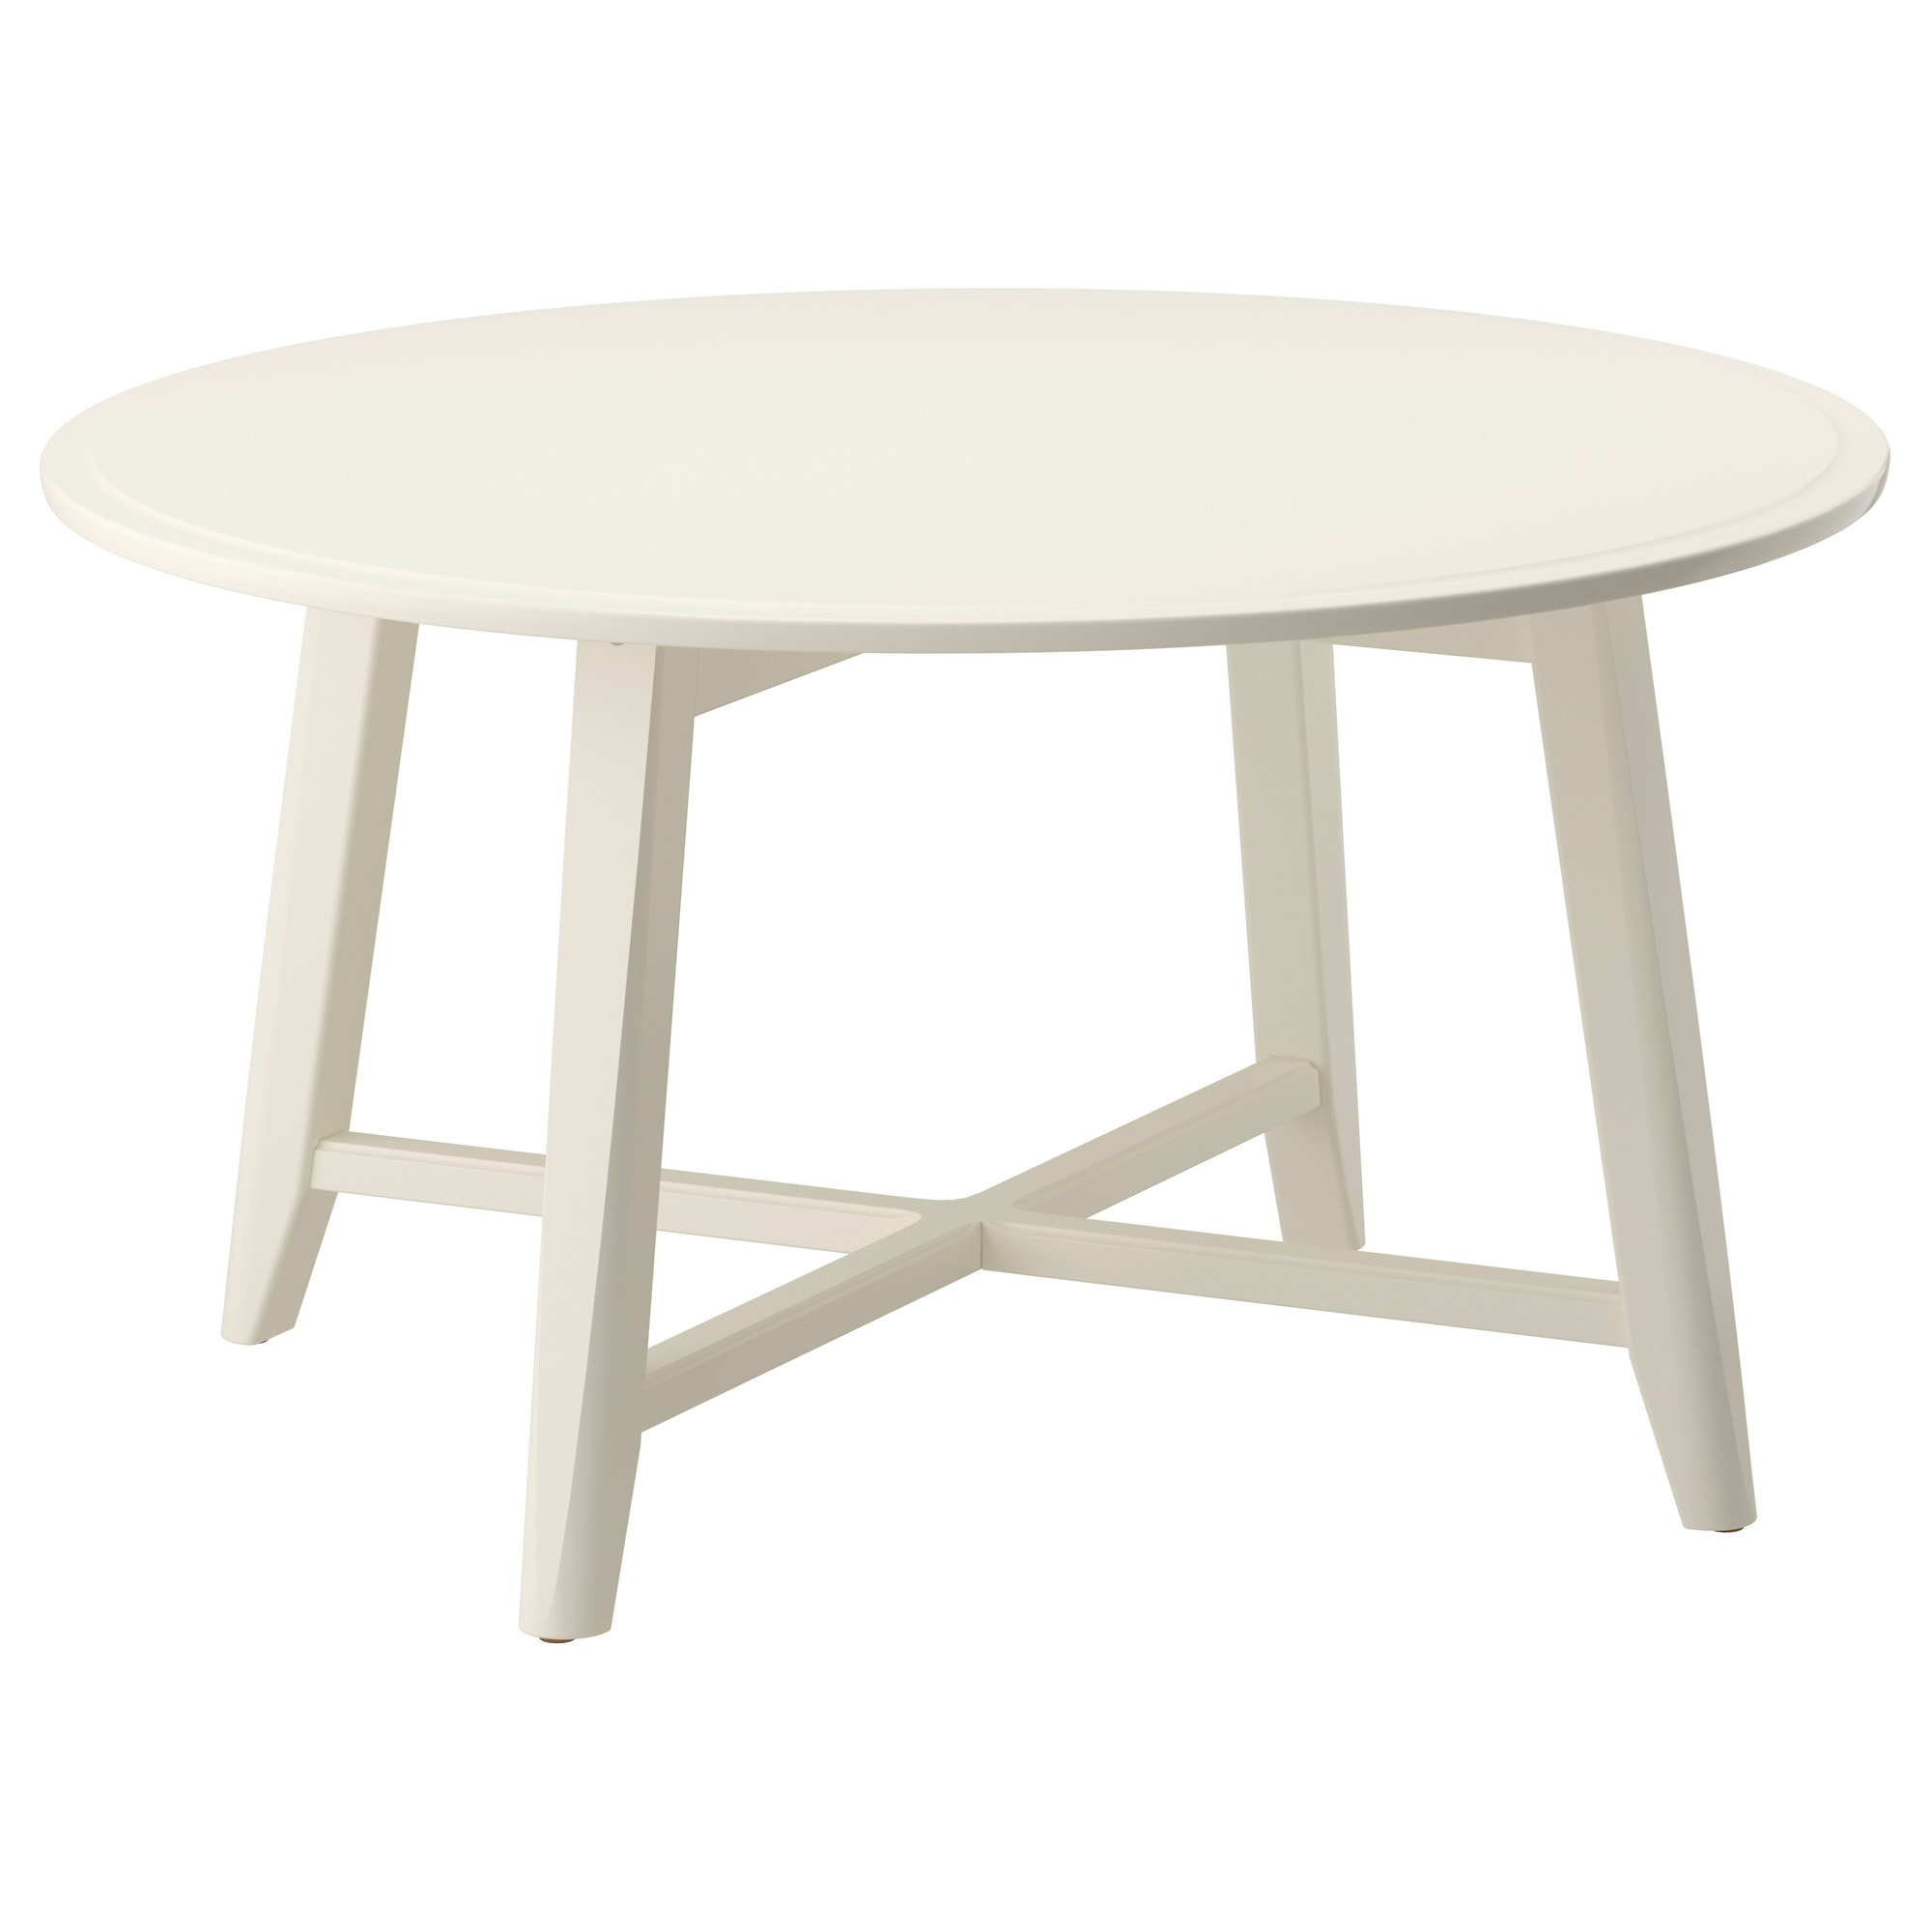 Tables Basses Et Tables D Appoint Ikea # Meuble Tv Roulettes Ikea